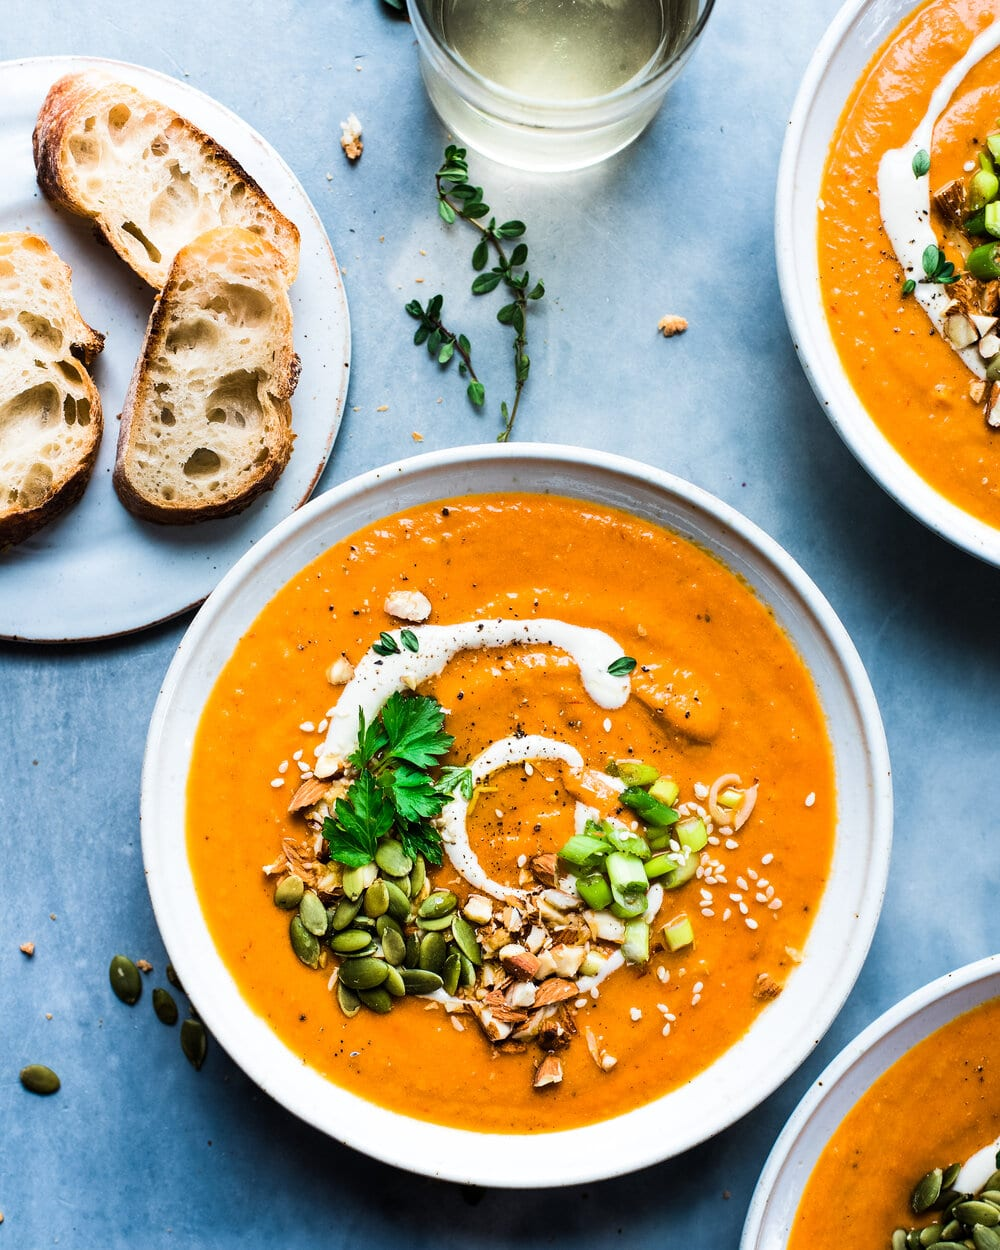 Spicy Instant Pot Carrot Harissa Soup